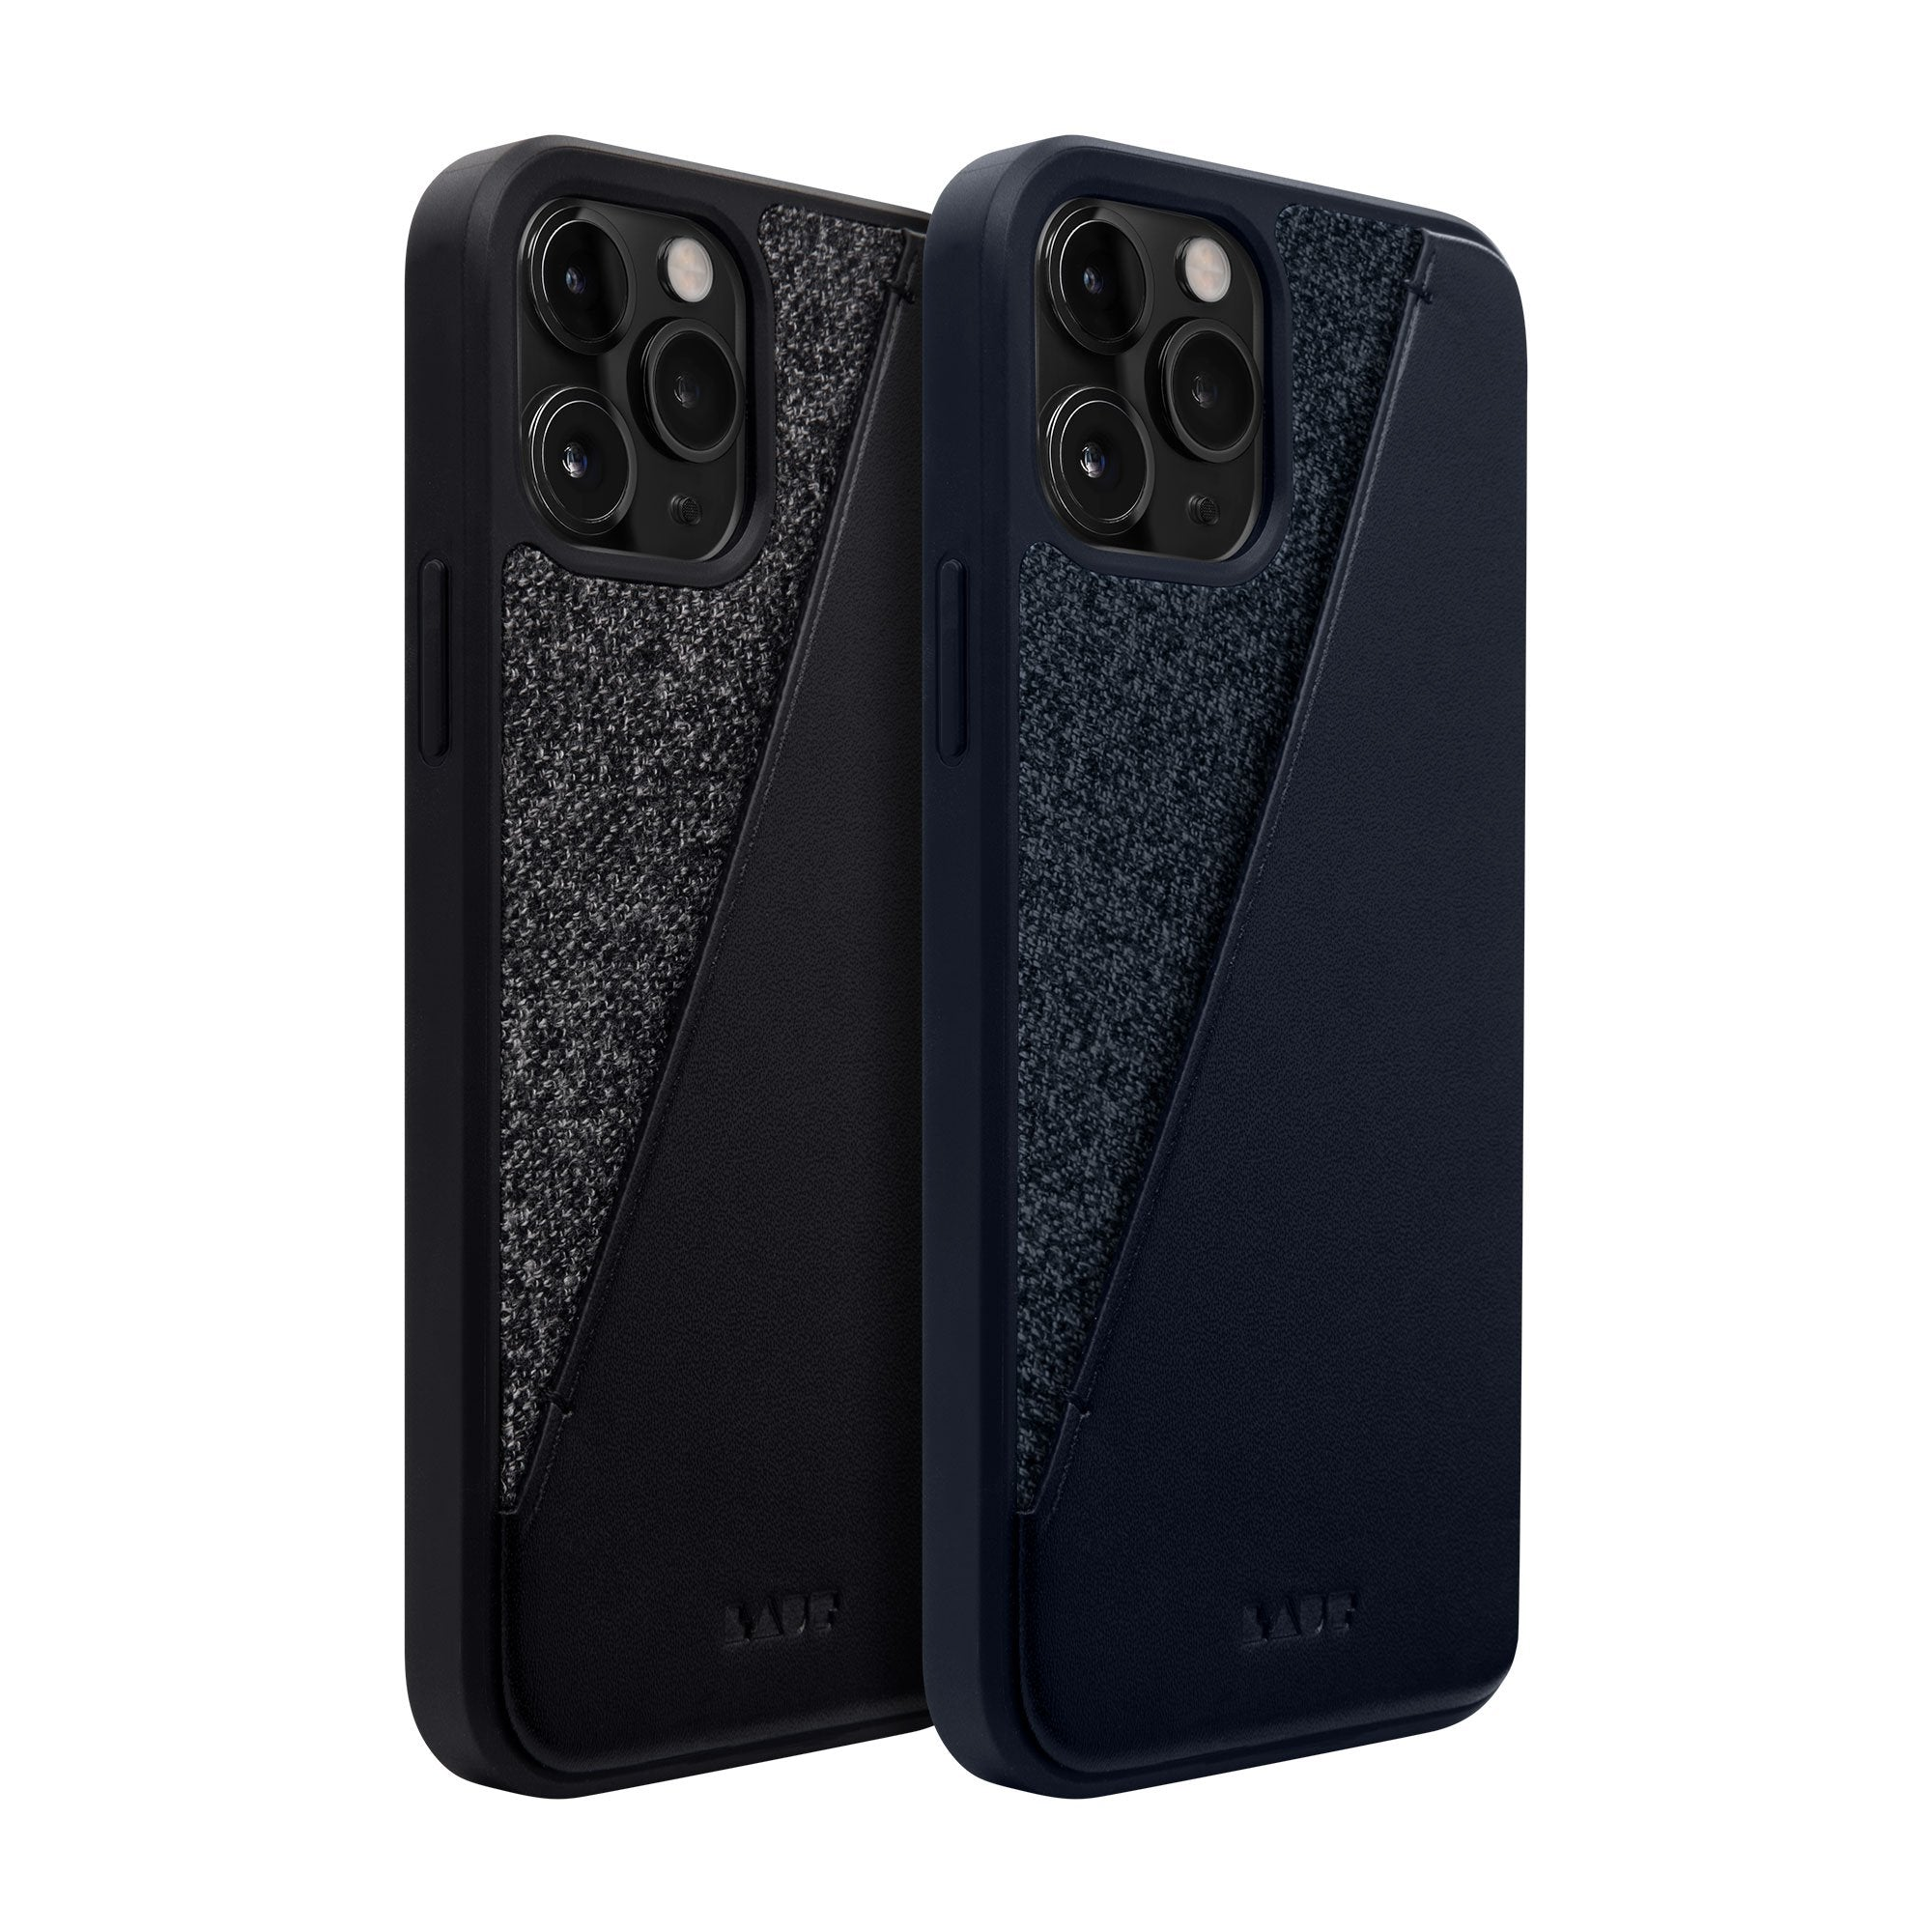 INFLIGHT Card case for iPhone 12 series